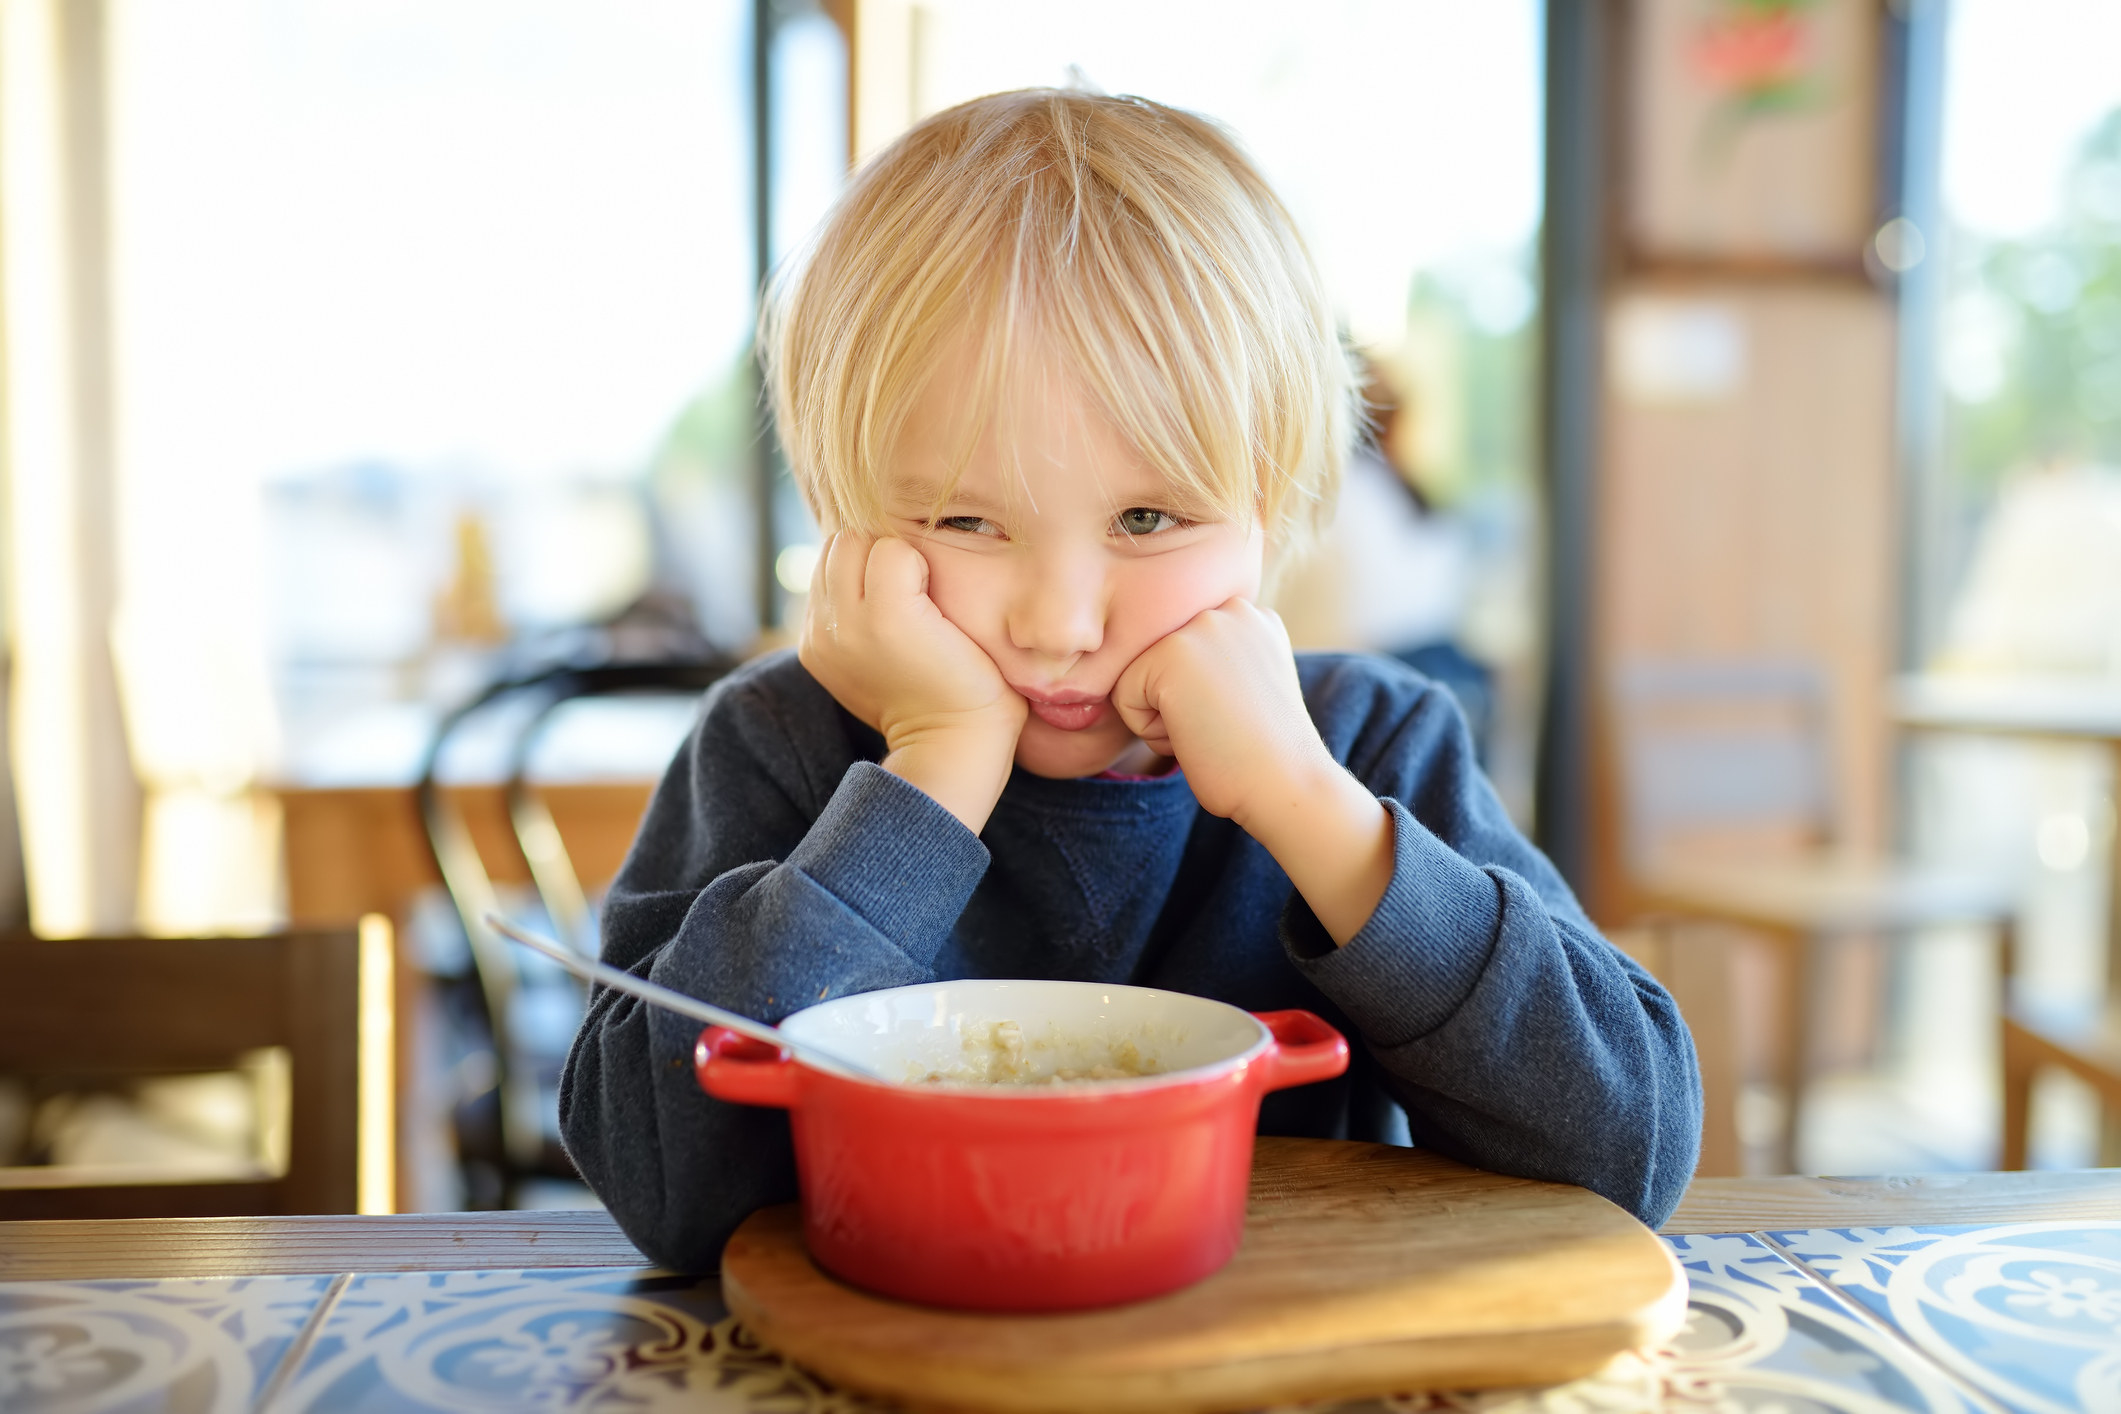 A kid sitting at the table but doesn't want to eat